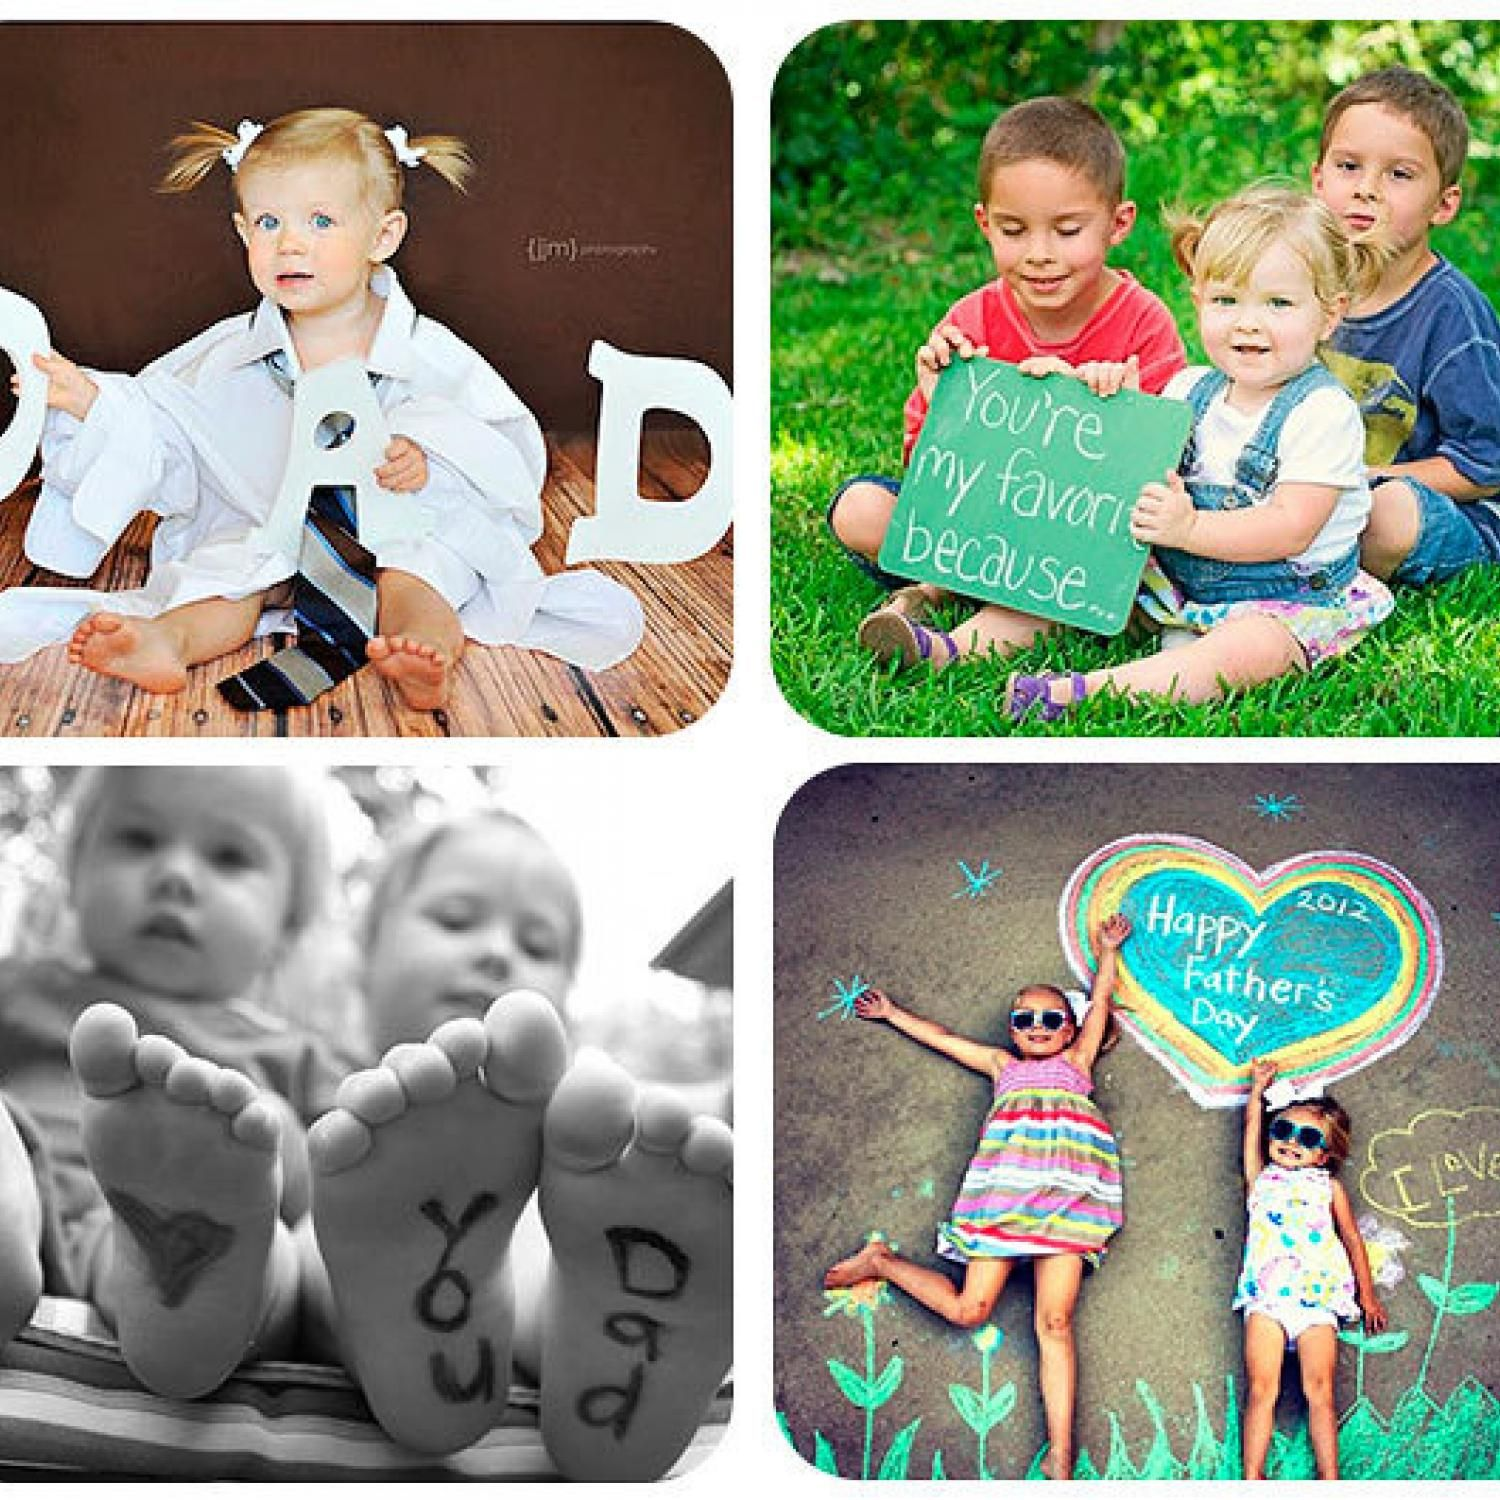 10 precious fathers day gift ideas from a new baby baby